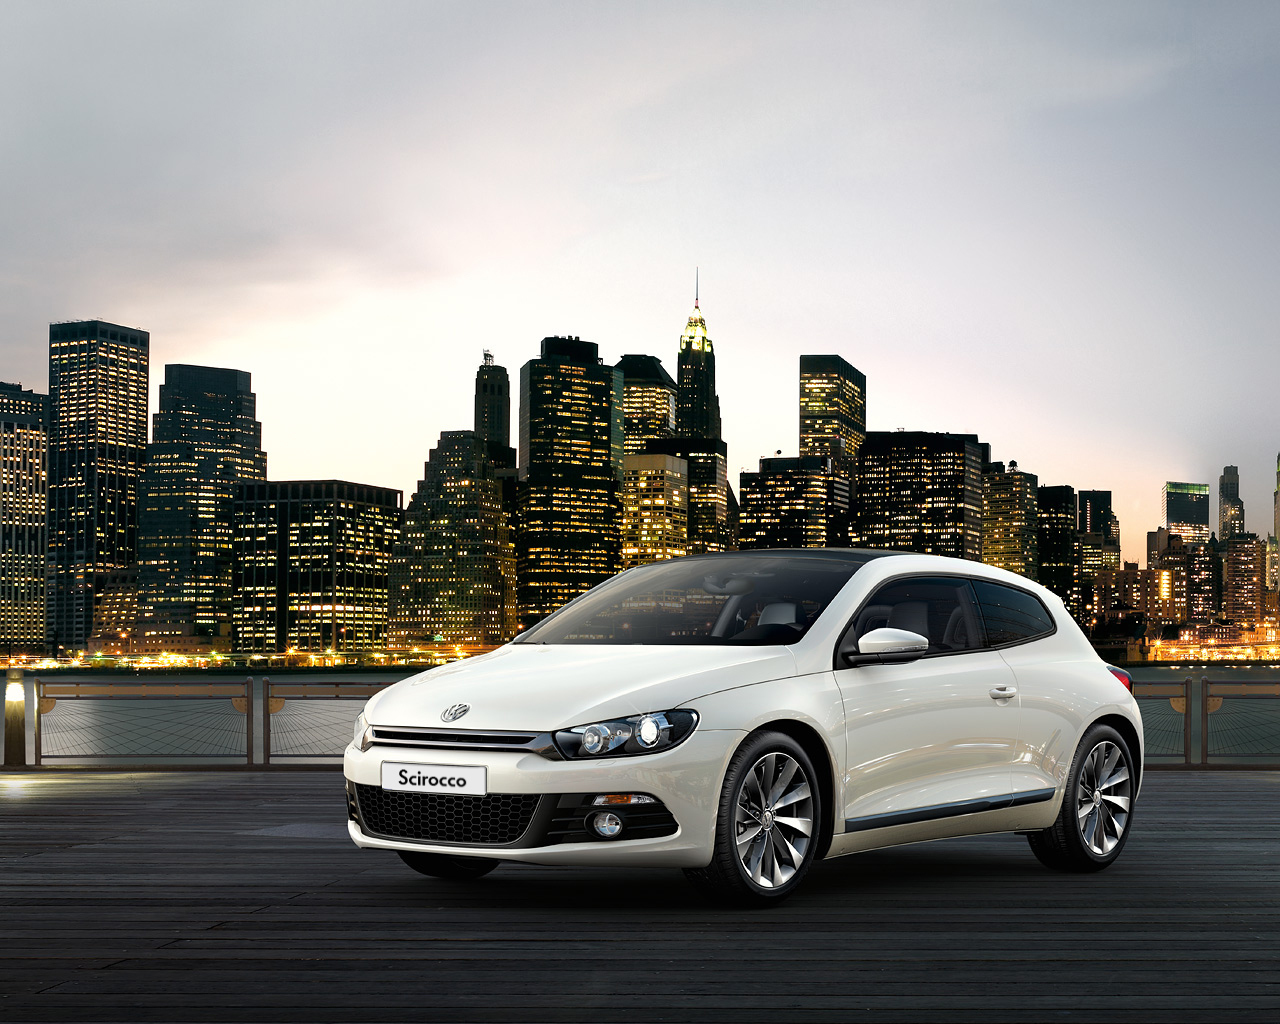 2017 Volkswagen Scirocco Review - Price and Specification ...